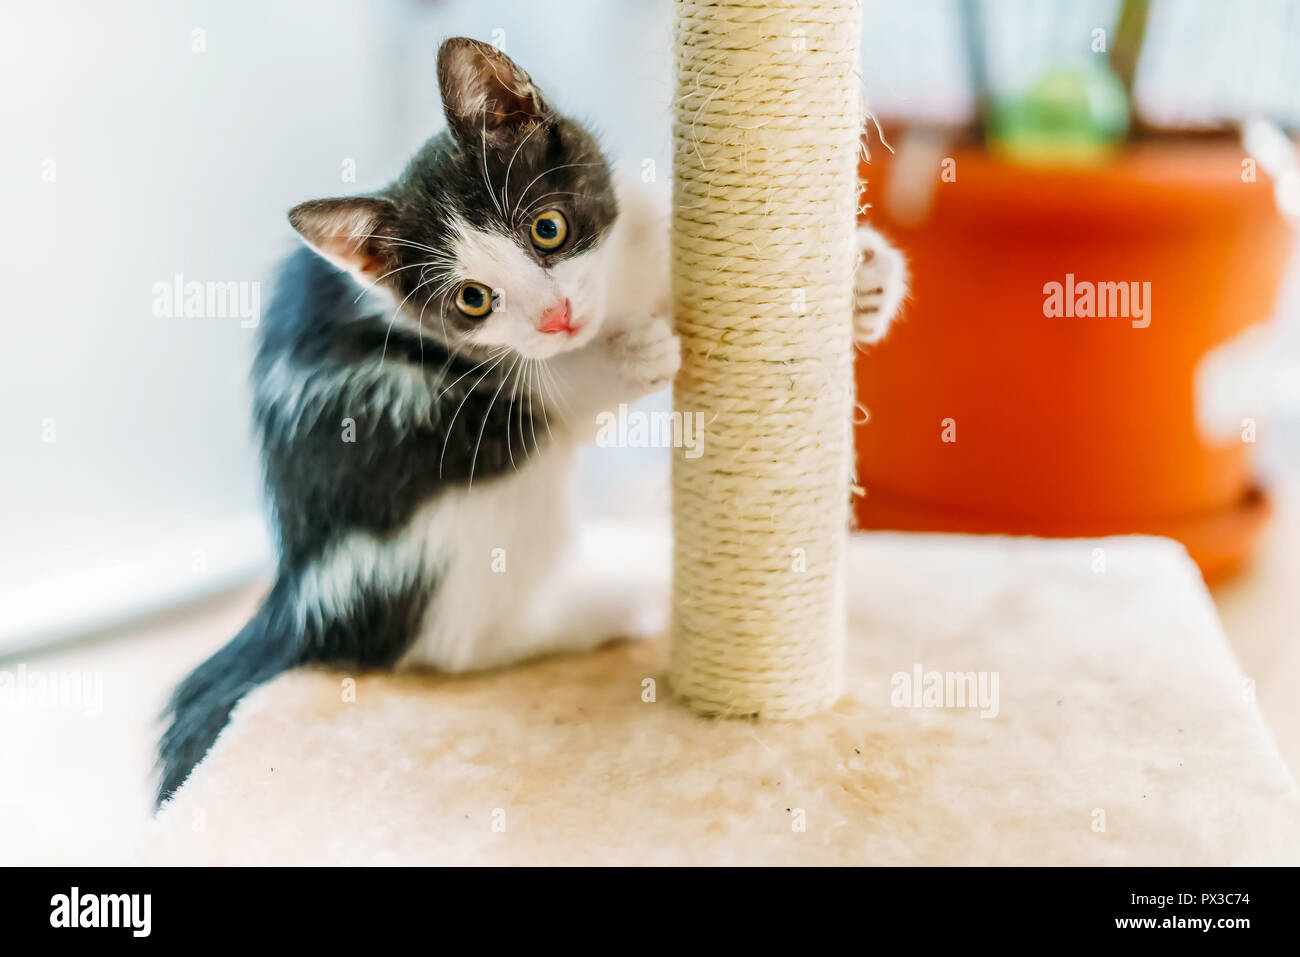 Cute Baby Cat Scratching And Sharpening Claws At Home - Stock Image